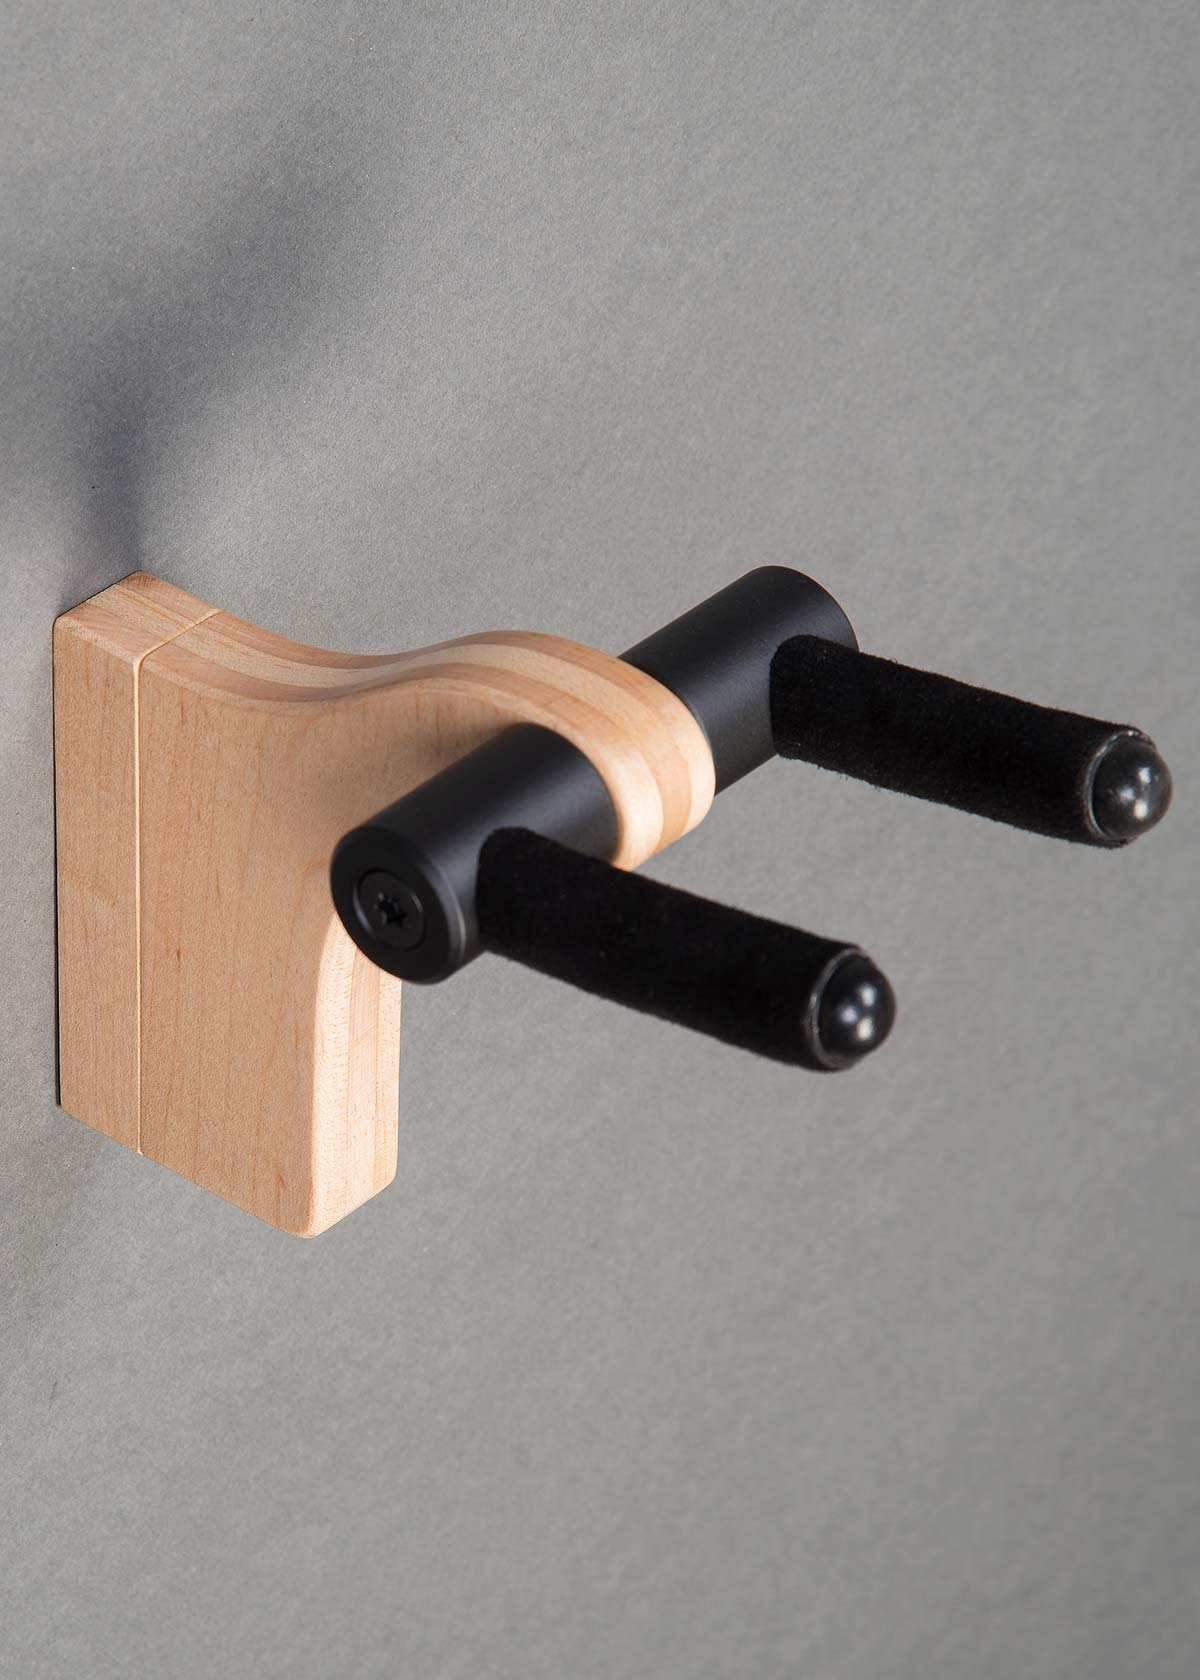 WM Guitar Stand in Curly Maple with Ebony Binding